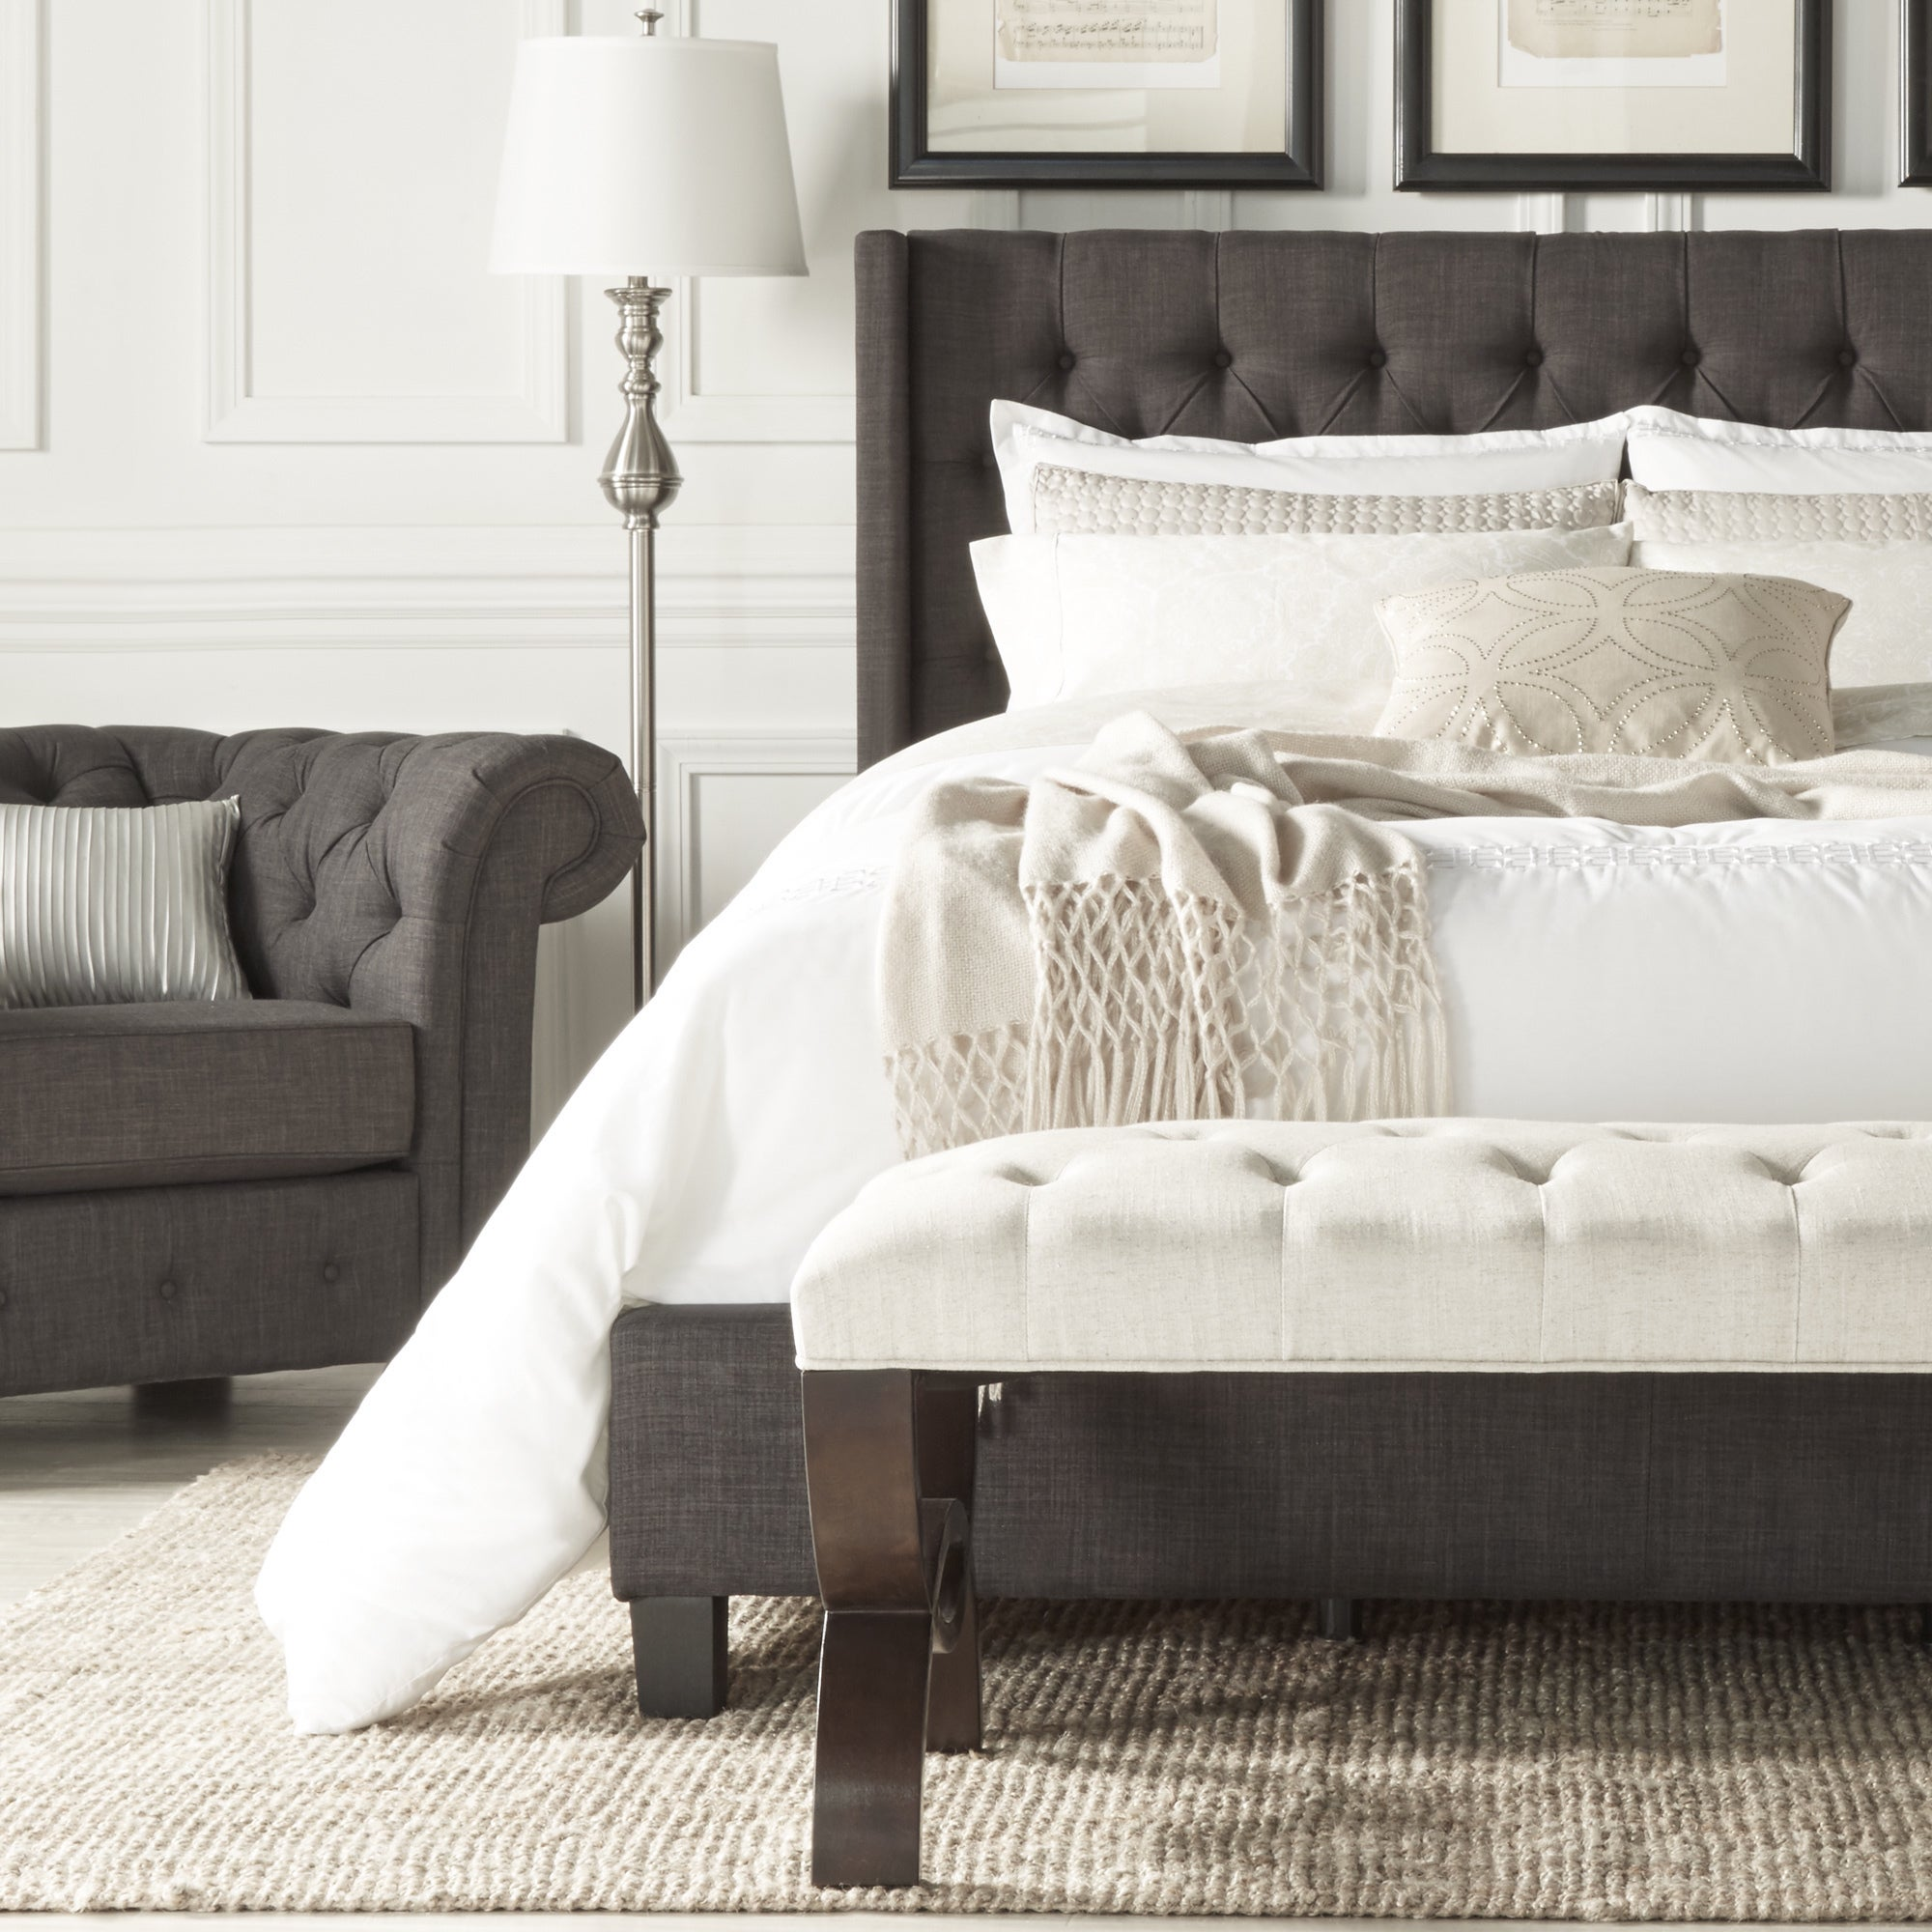 Shop Naples Wingback Button Tufted Upholstered King Bed by iNSPIRE Q ...